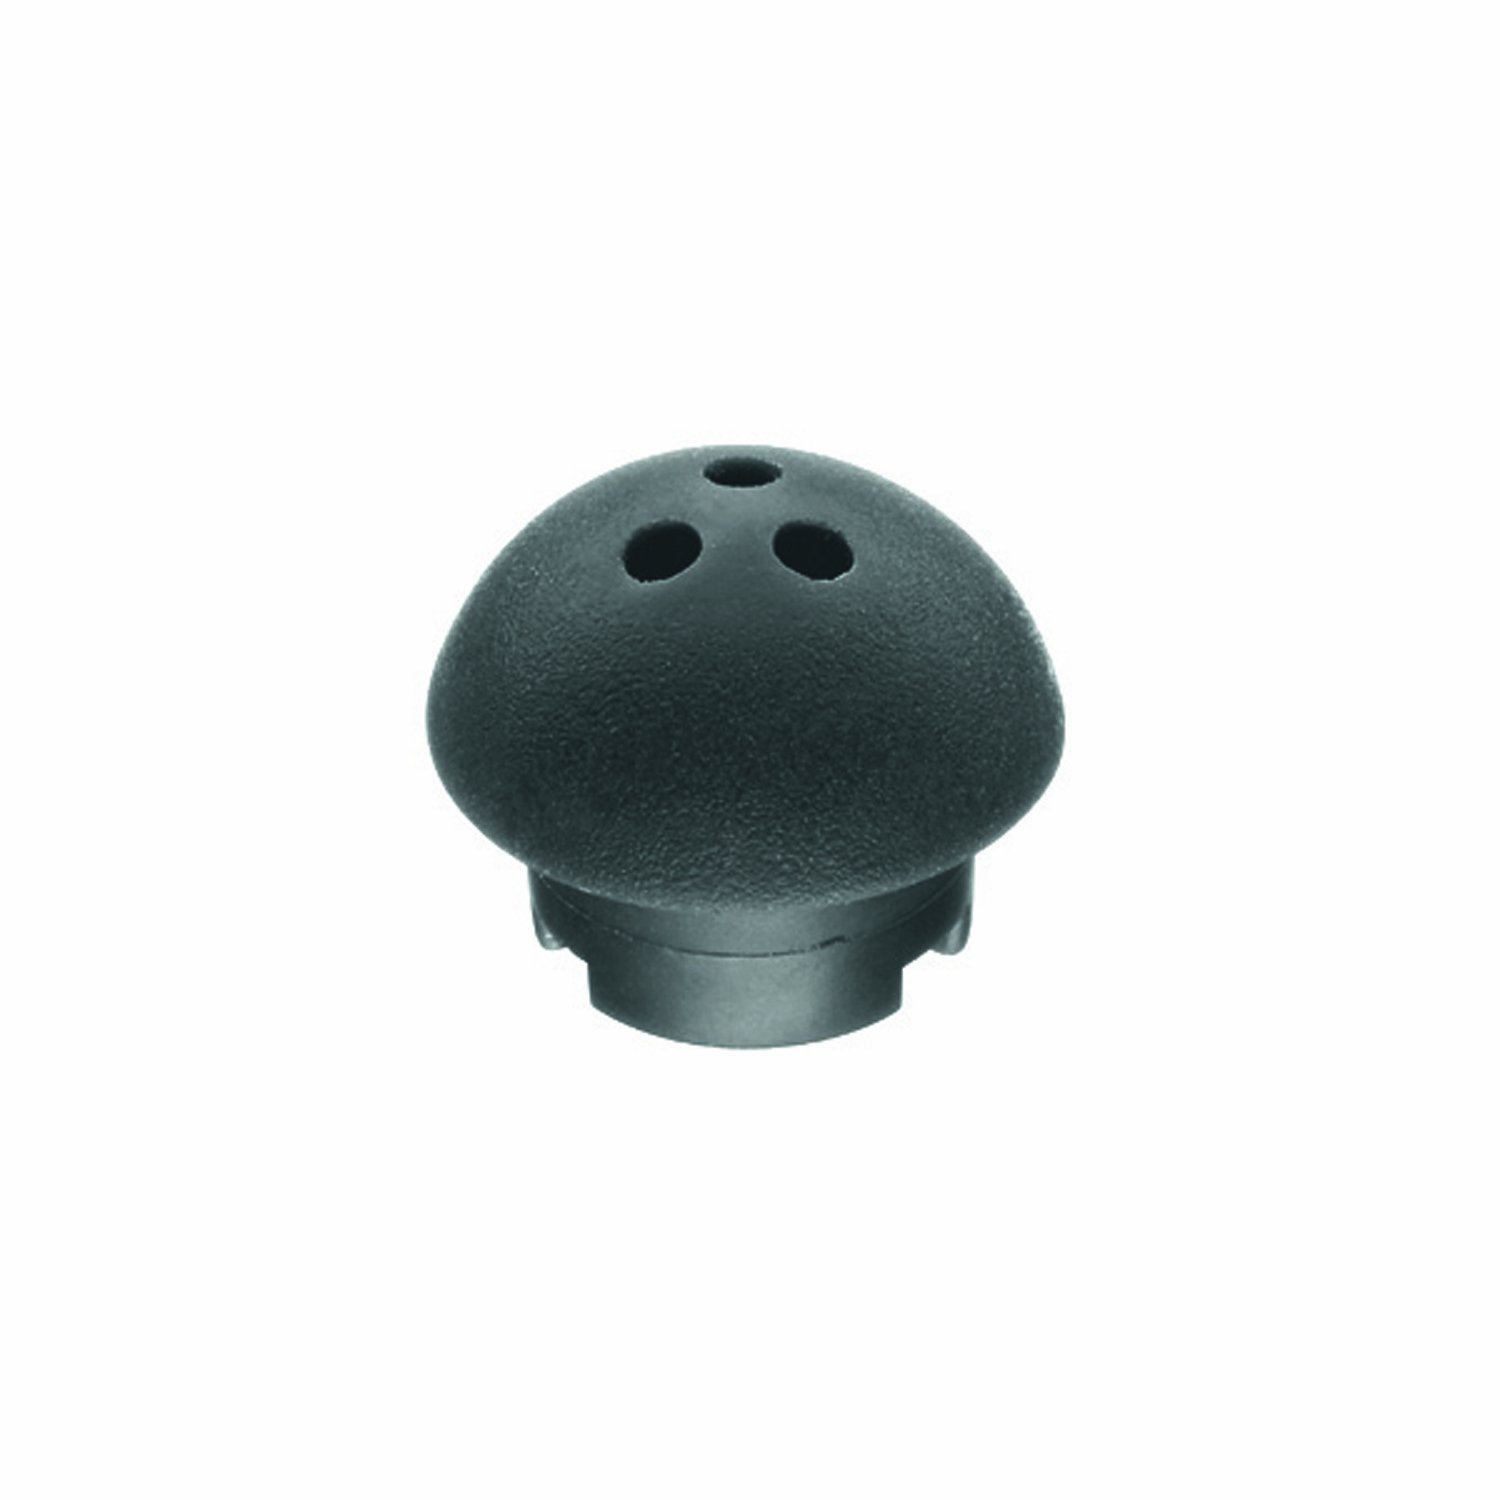 WMF Perfect Plus Safety Valve for all WMF Pressure Cookers 3201001201